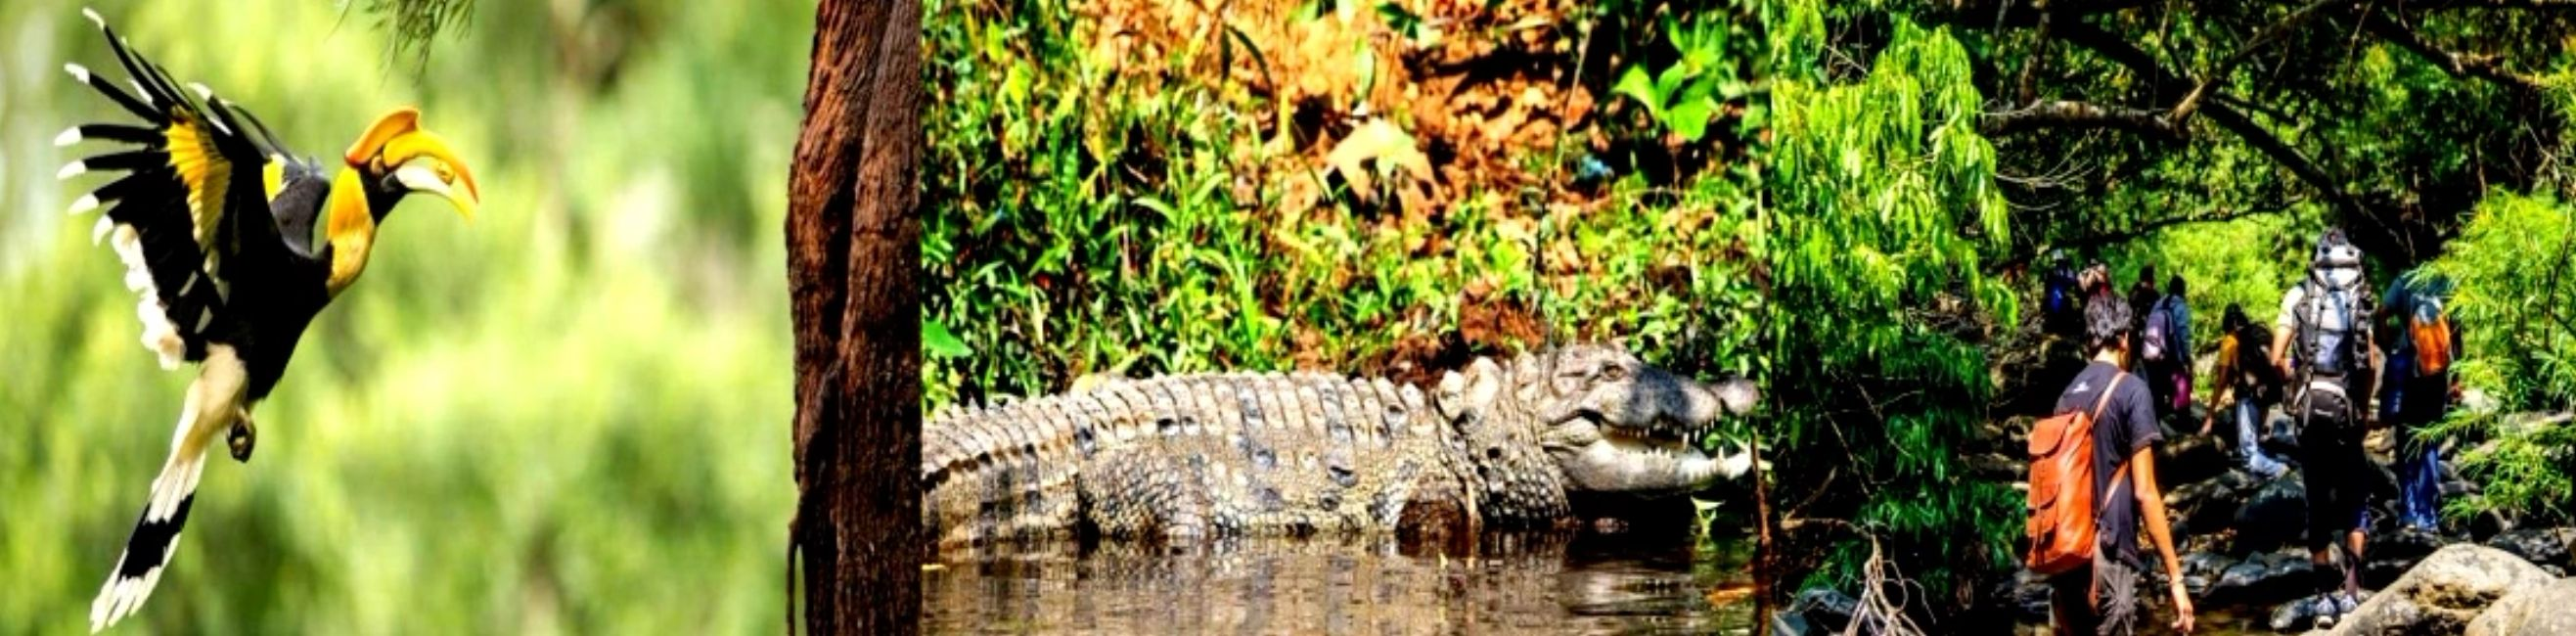 Dandeli Resorts Jungle stay. Dandeli Attraction place Syntheri Rock Water falls. Crocodile Park